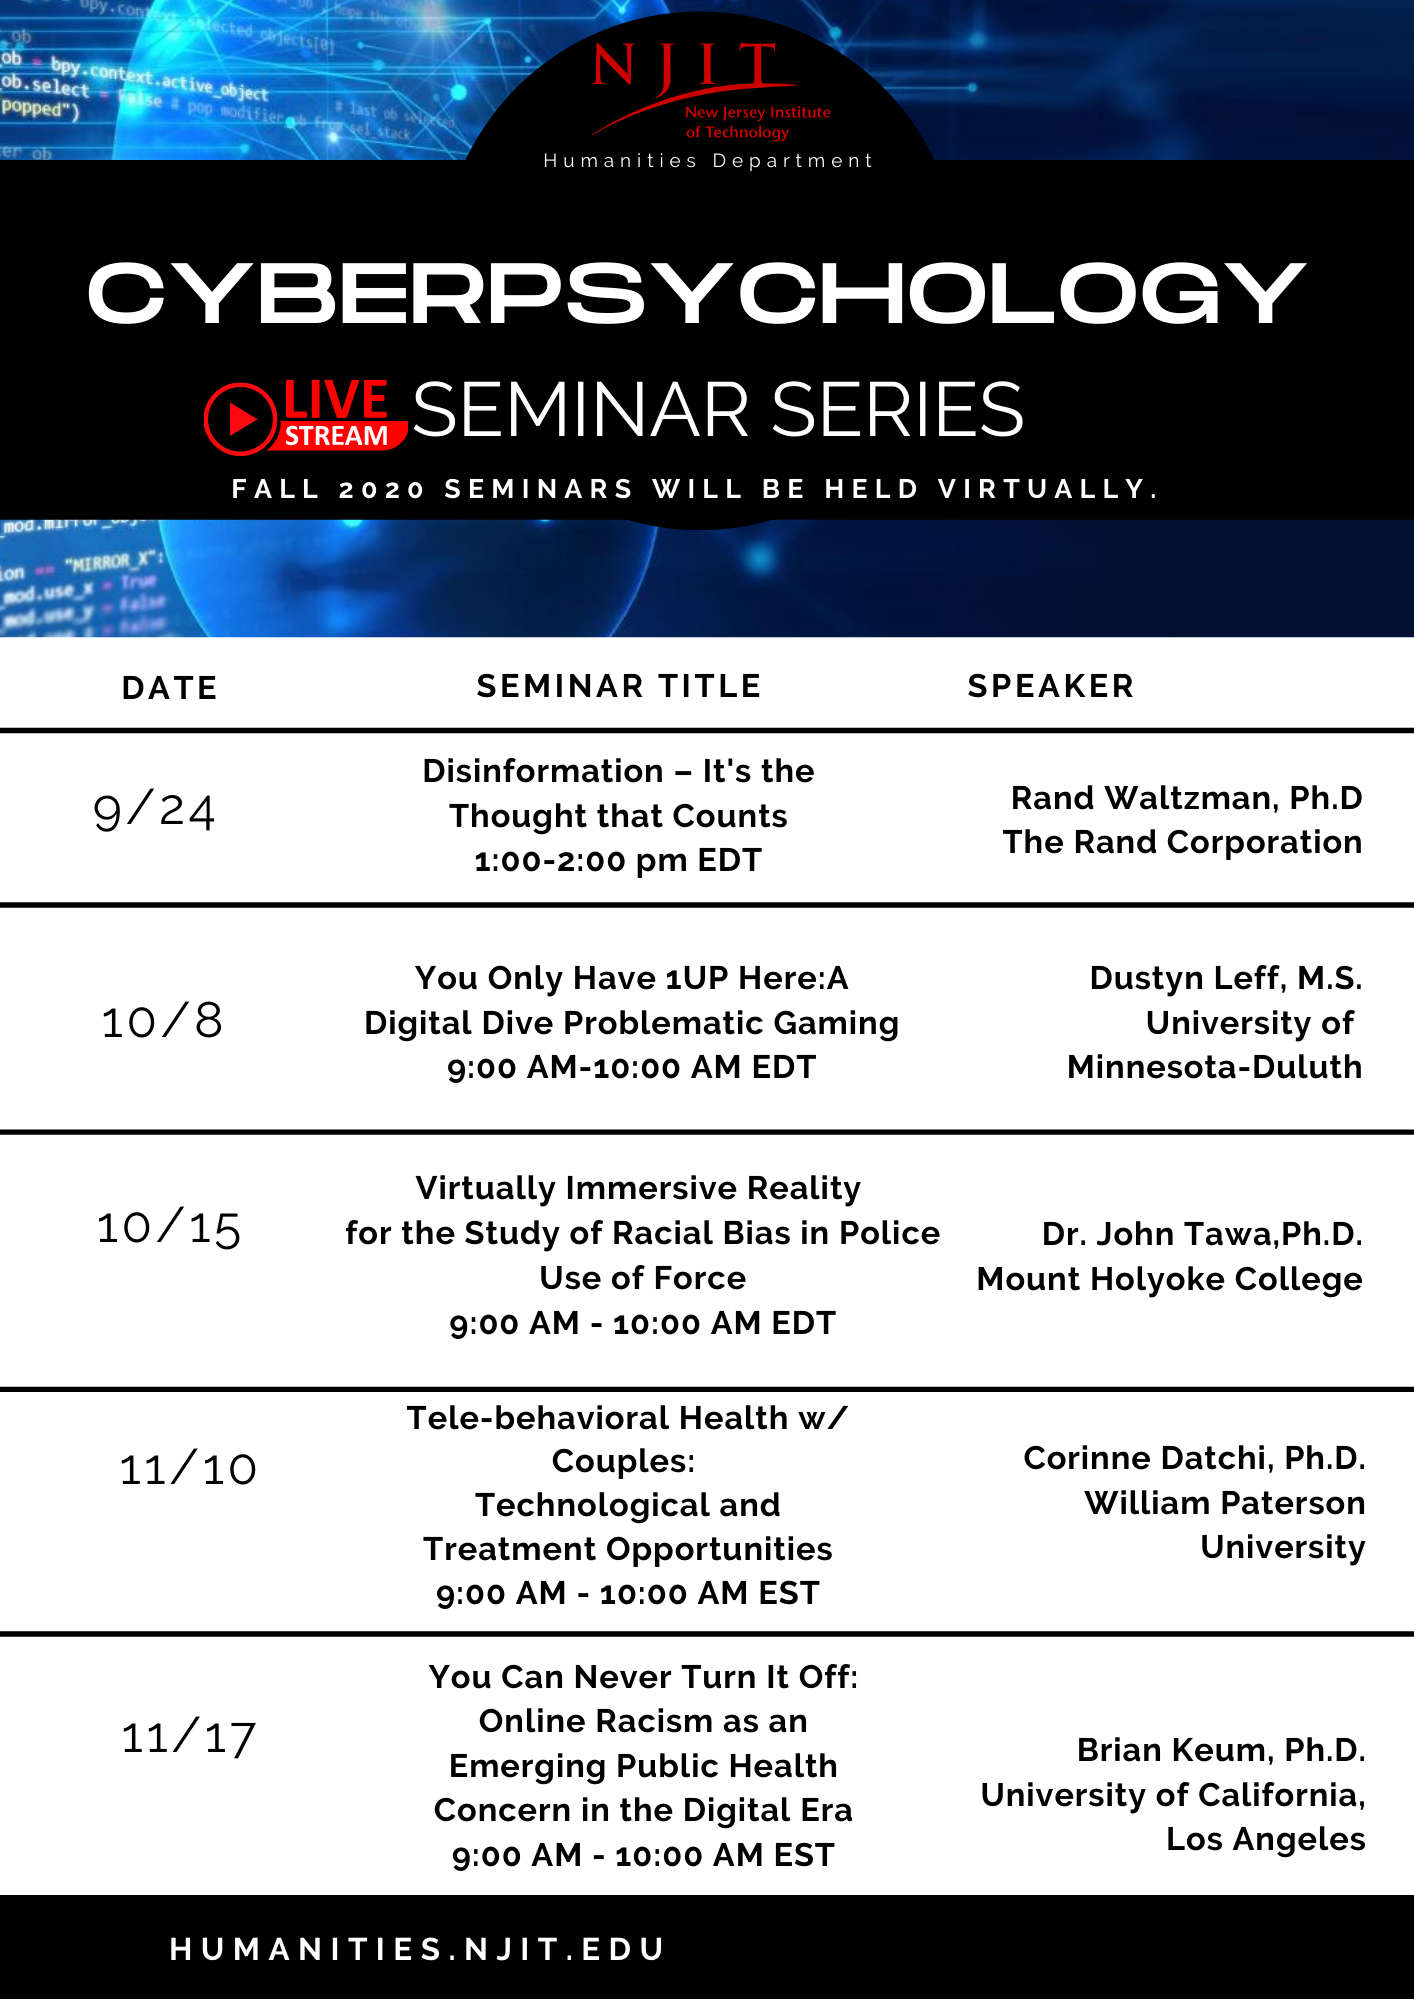 Fall 2020 Cyberpsychology Seminar Series